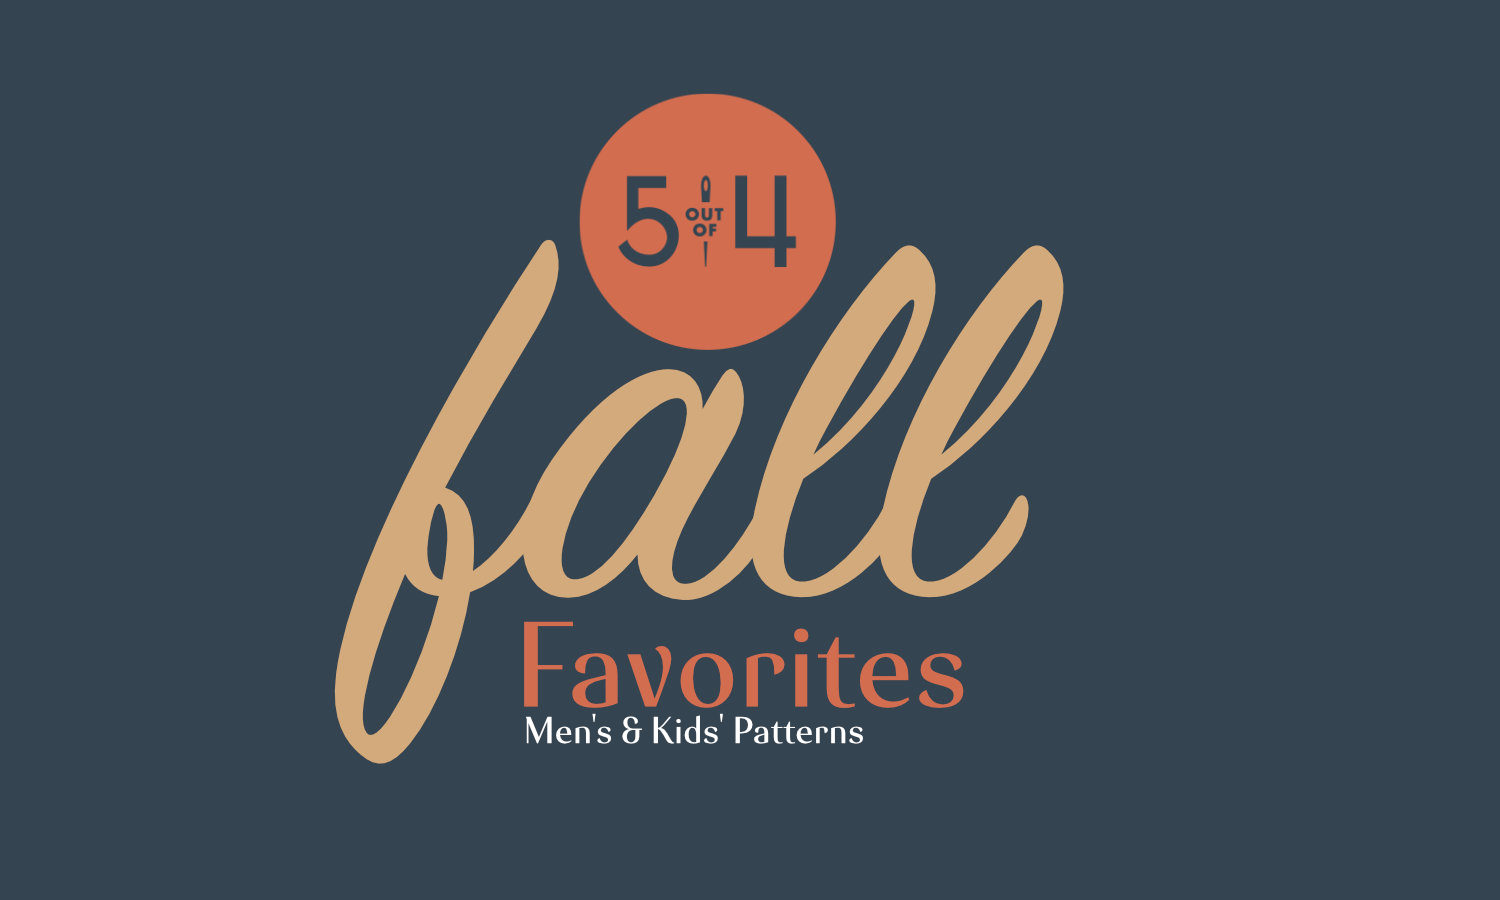 5 out of 4 fall favorites mens and kids